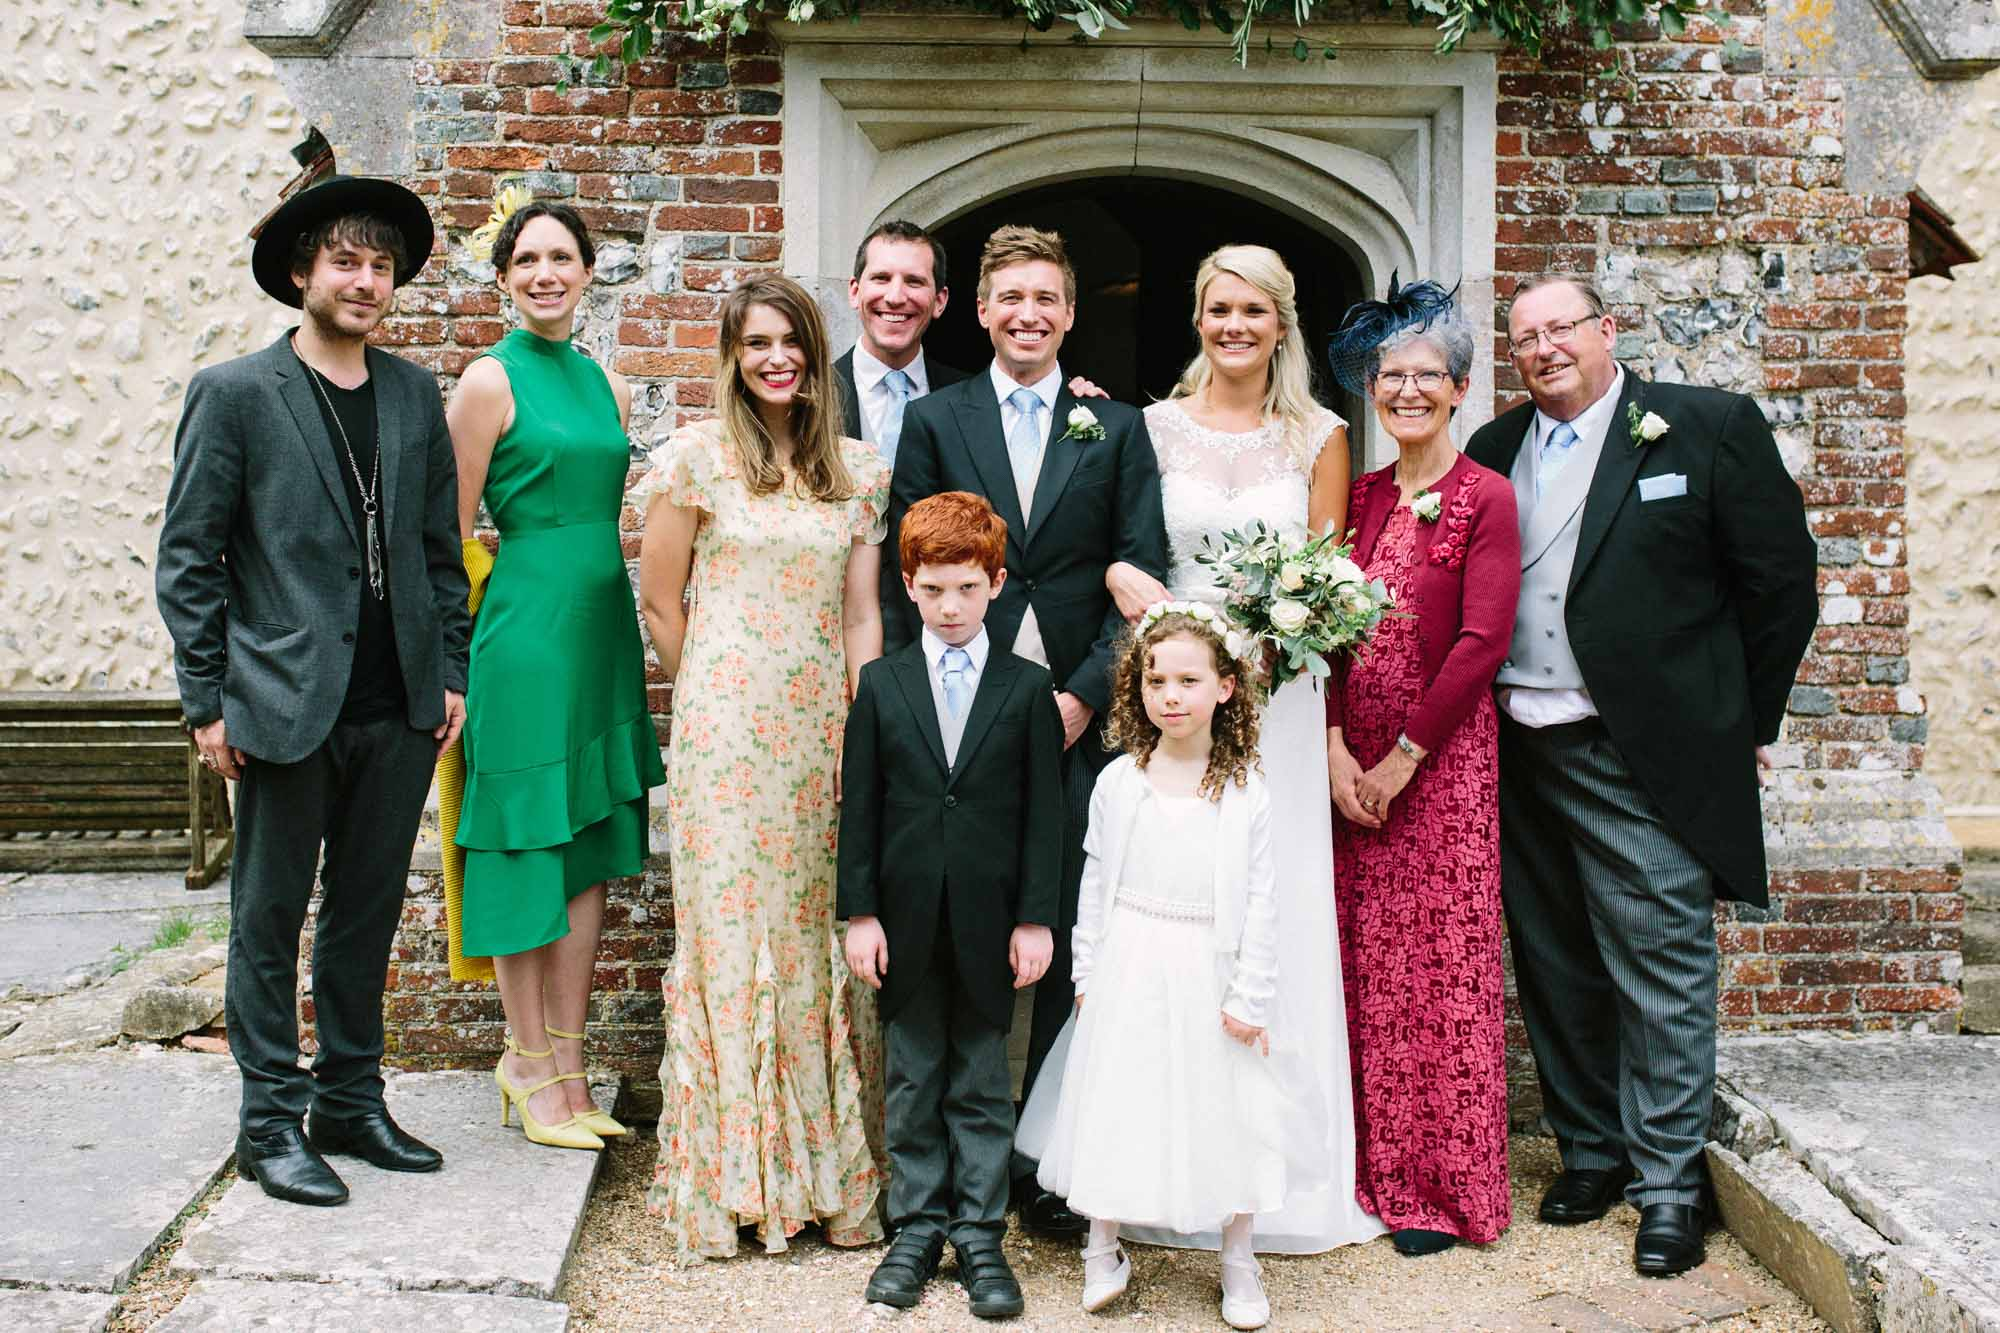 Formal family wedding photo outside church